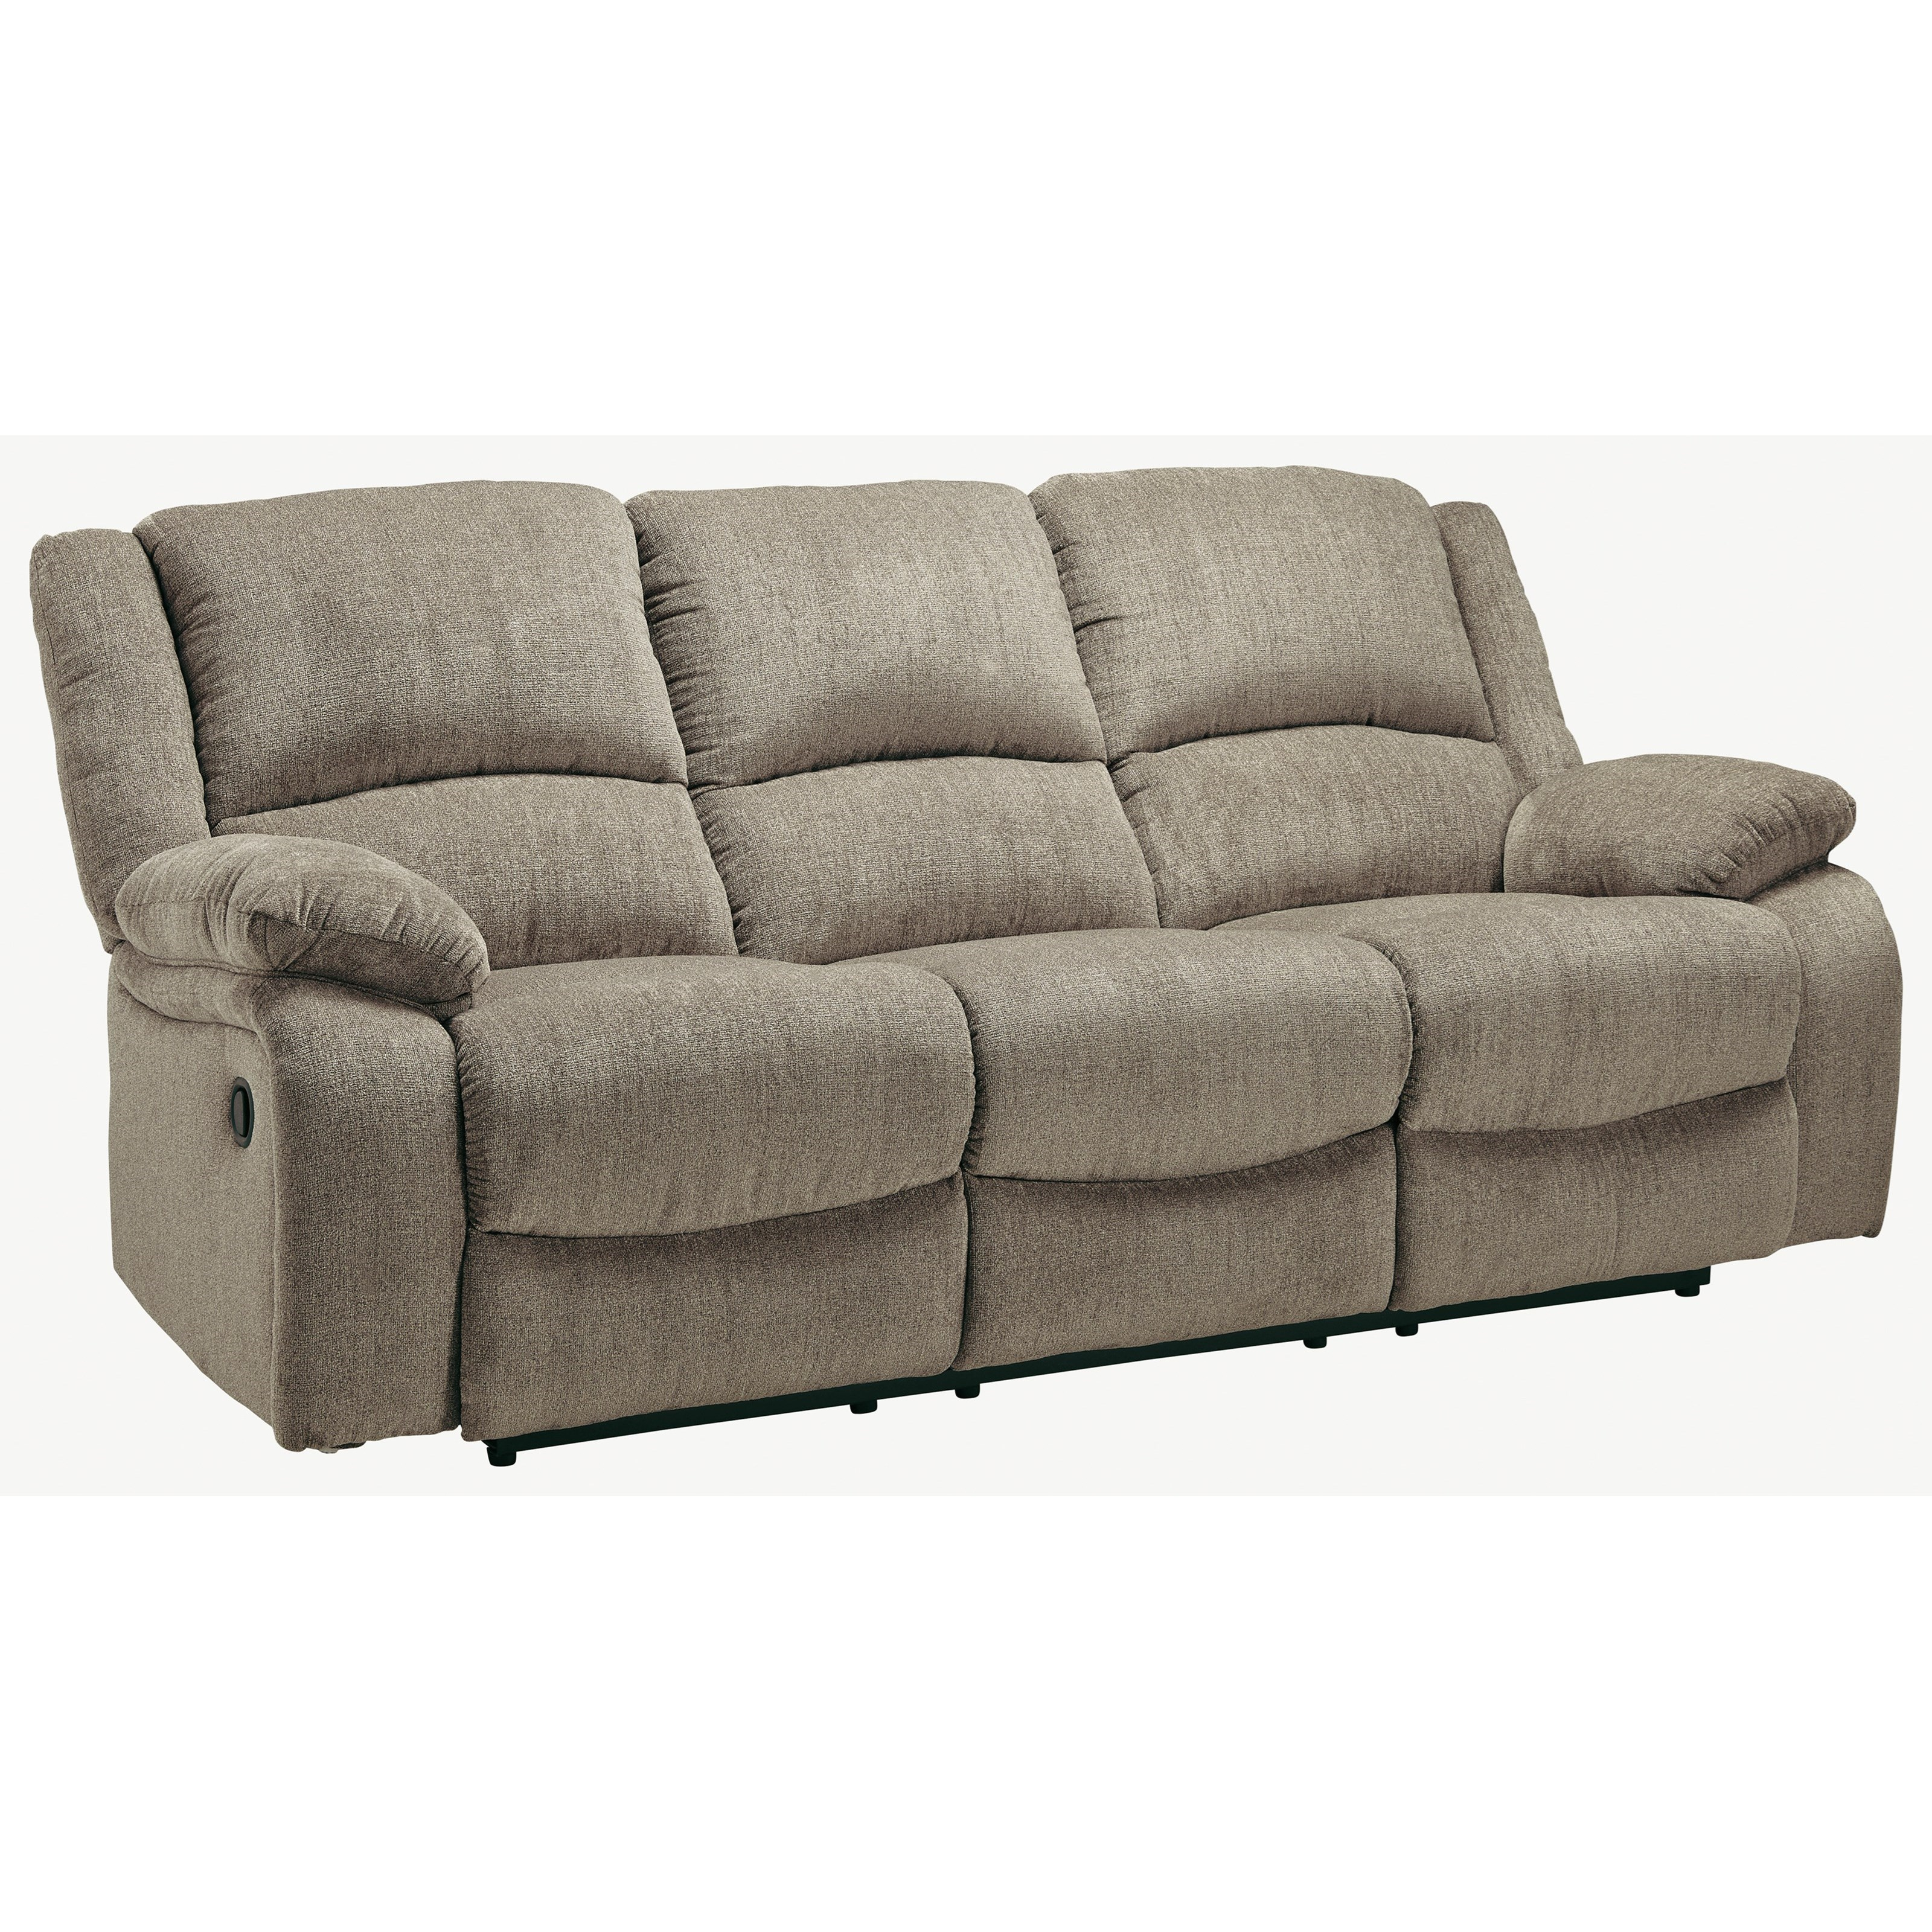 Draycoll Reclining Sofa by Signature Design by Ashley at Northeast Factory Direct